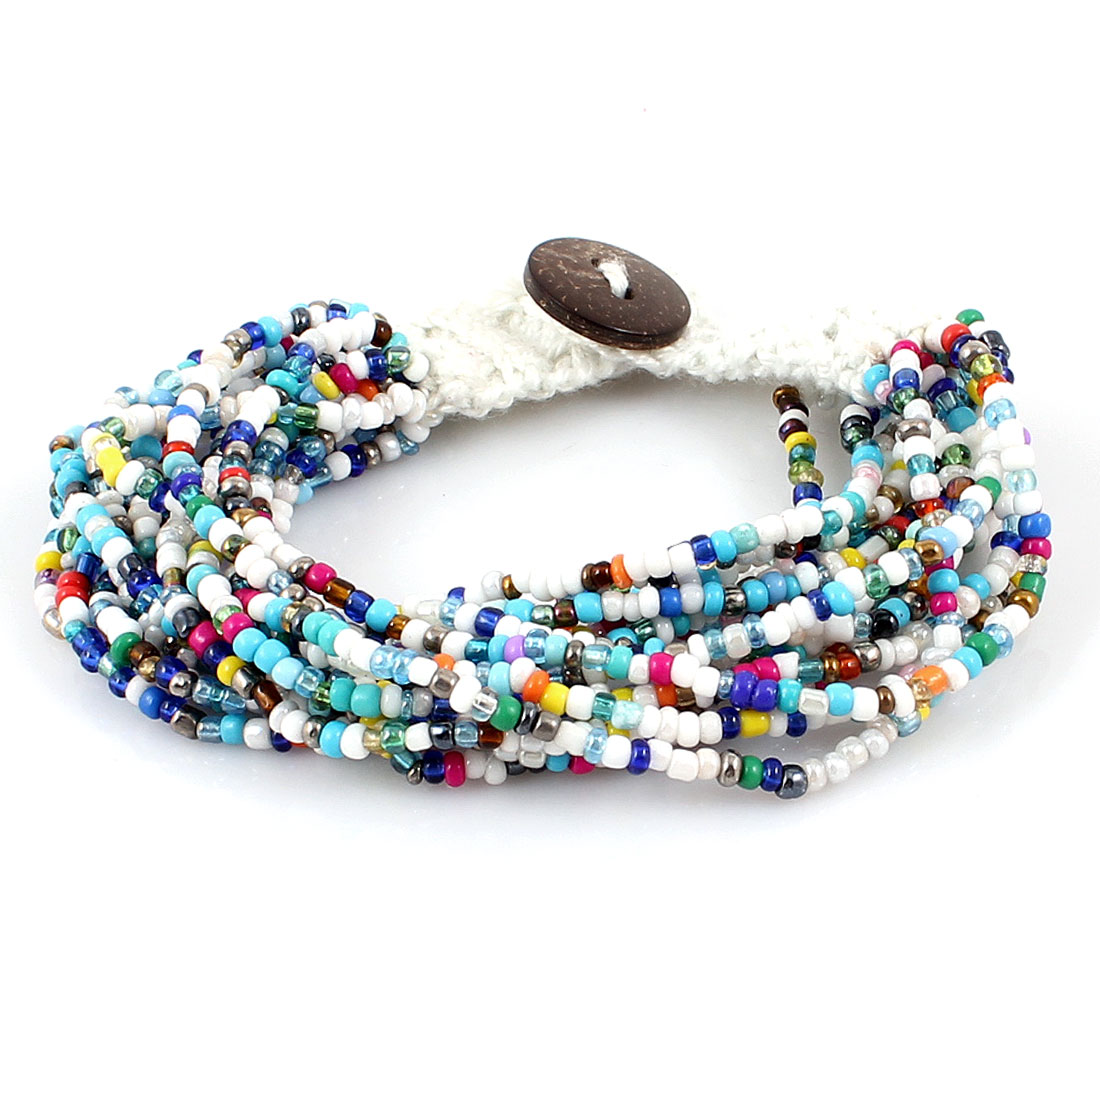 Multilayers String Braided Multicolor Beads Button Closure Wrist Bracelet Bangle